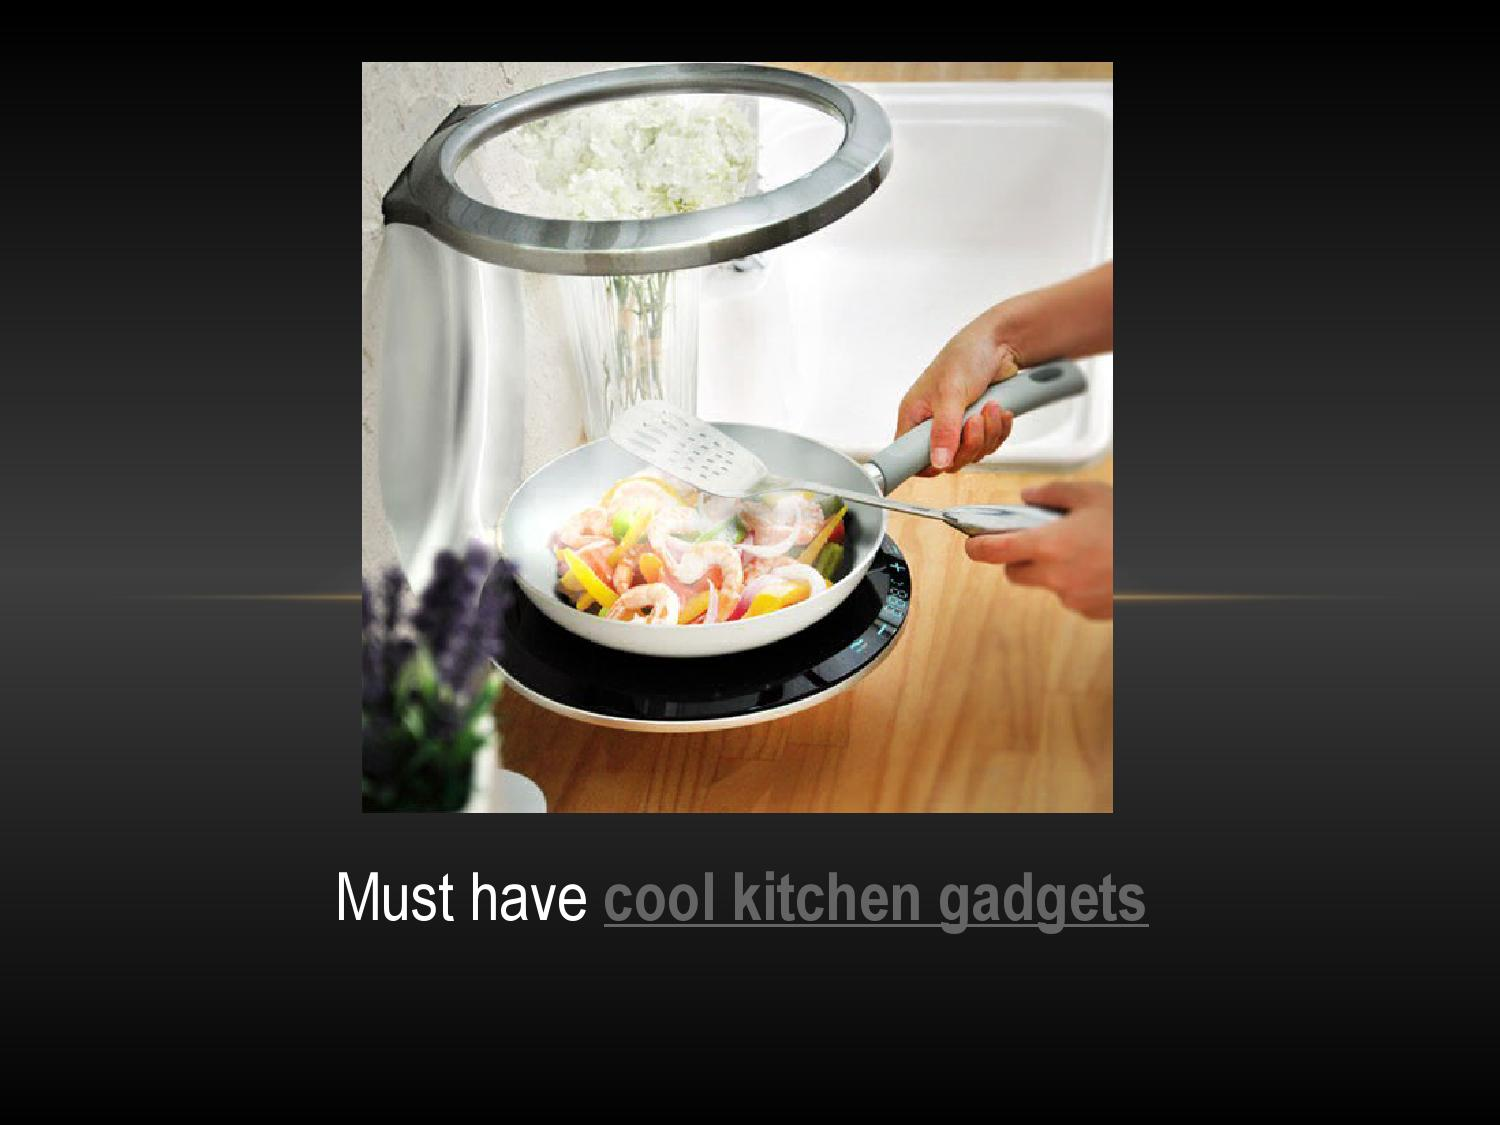 Neat Kitchen Gadgets Must Have Cool Kitchen Gadgets By Webinar Services Issuu